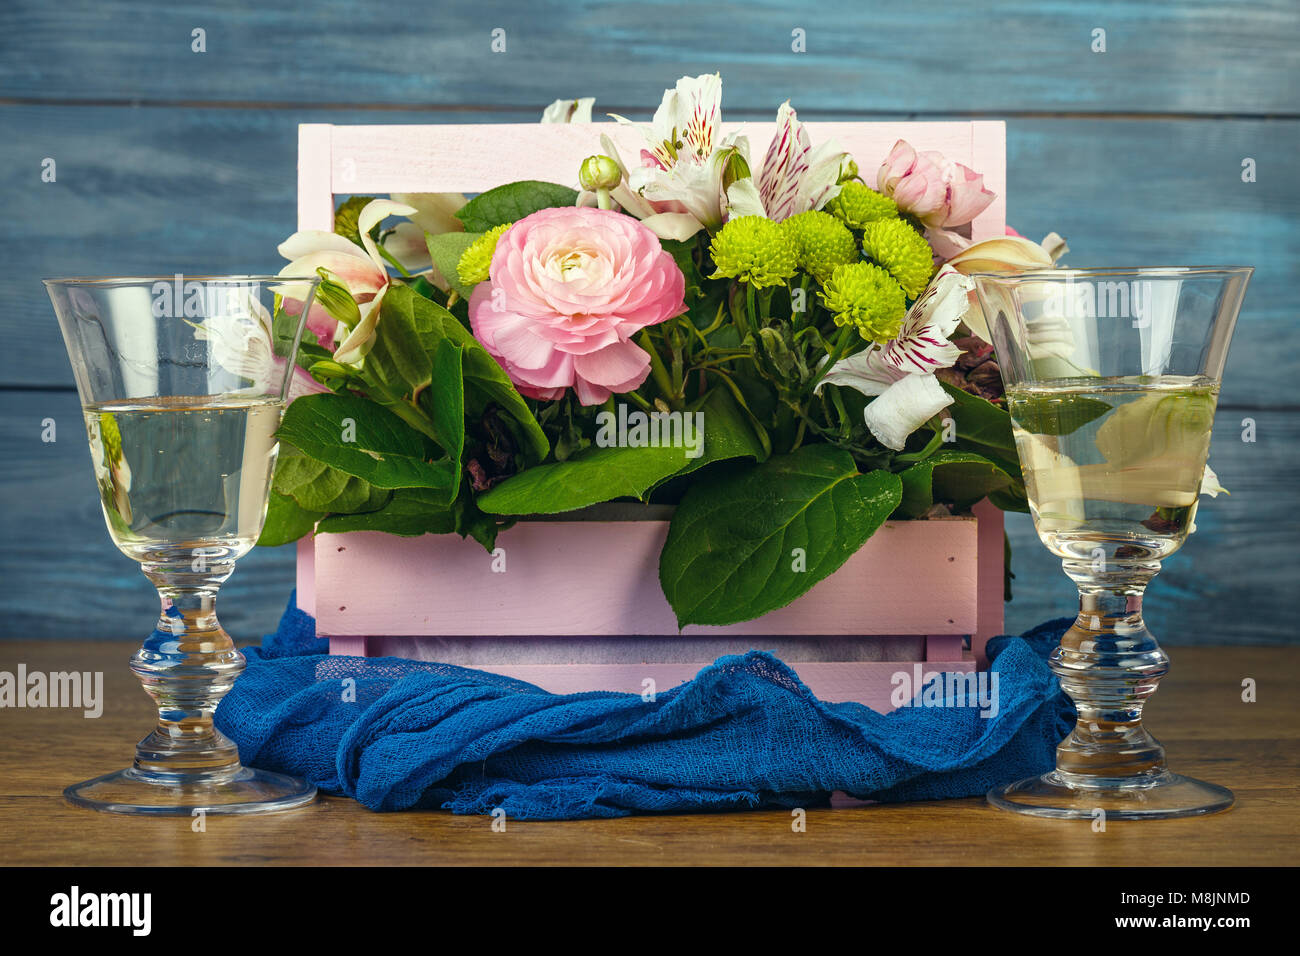 Arrangement With Flowers In A Pink Wooden Box And Wine Stock Photo Alamy